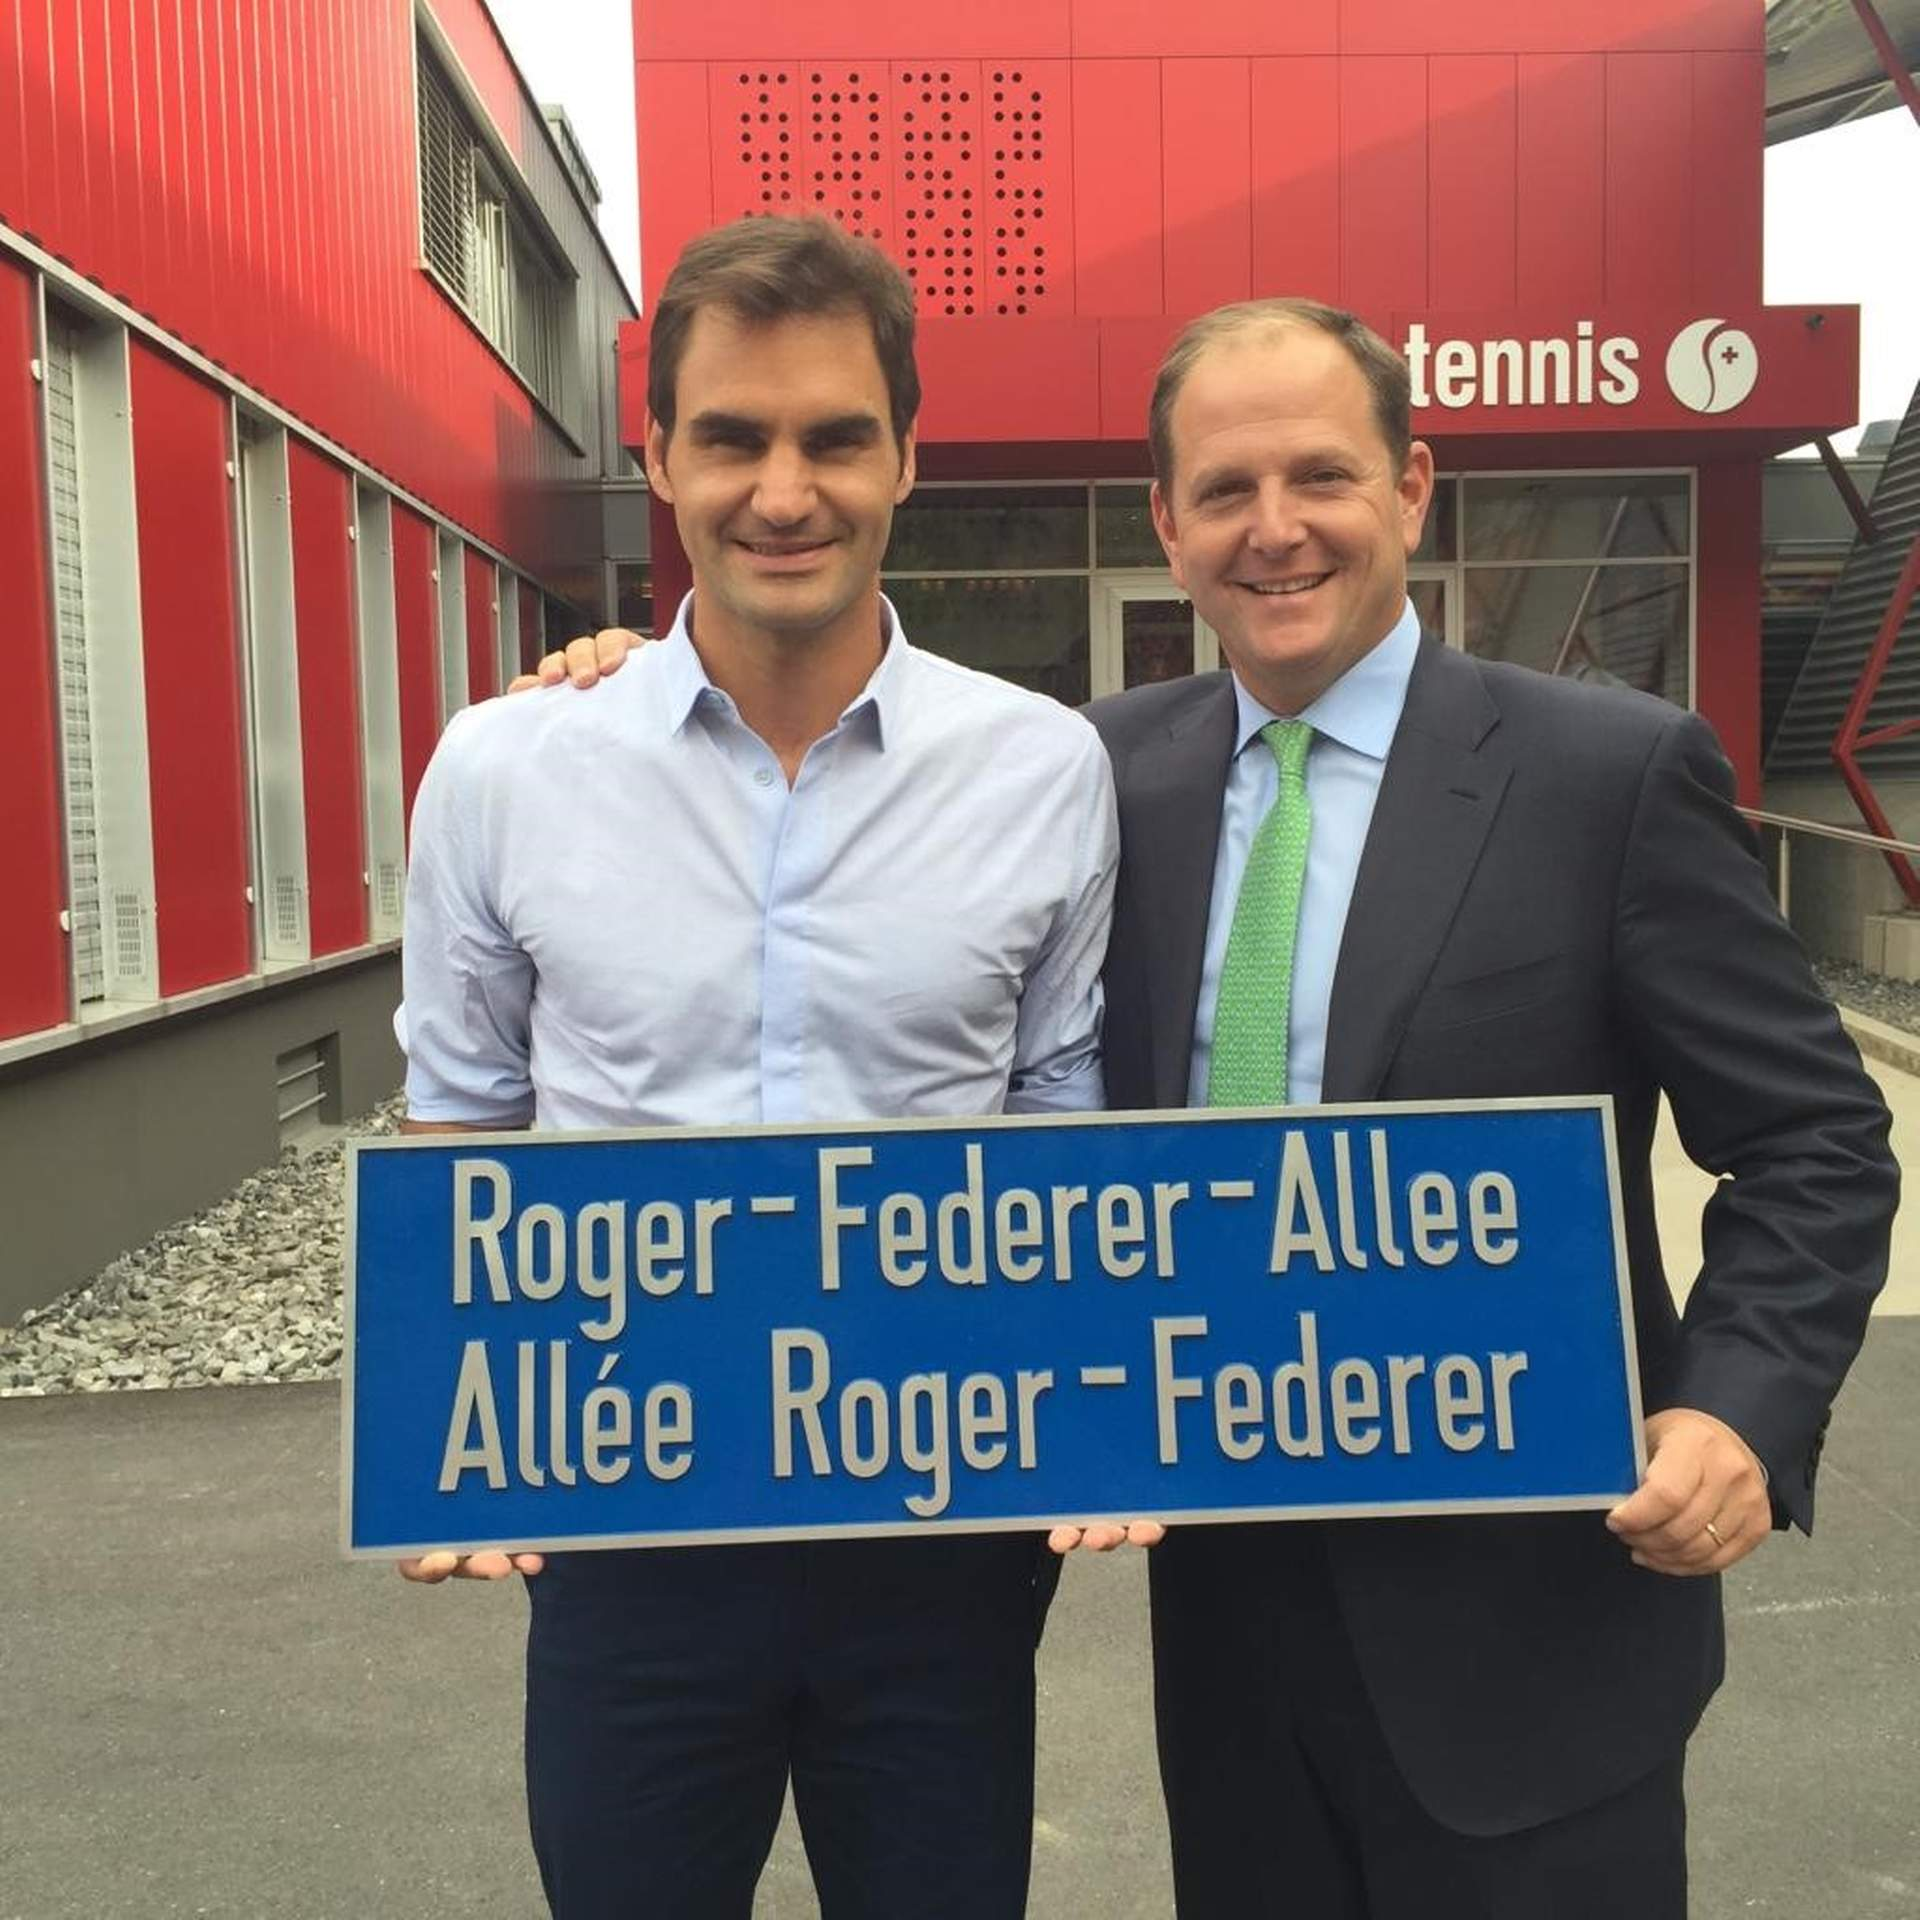 Roger Federer and his manager Tony Godsick